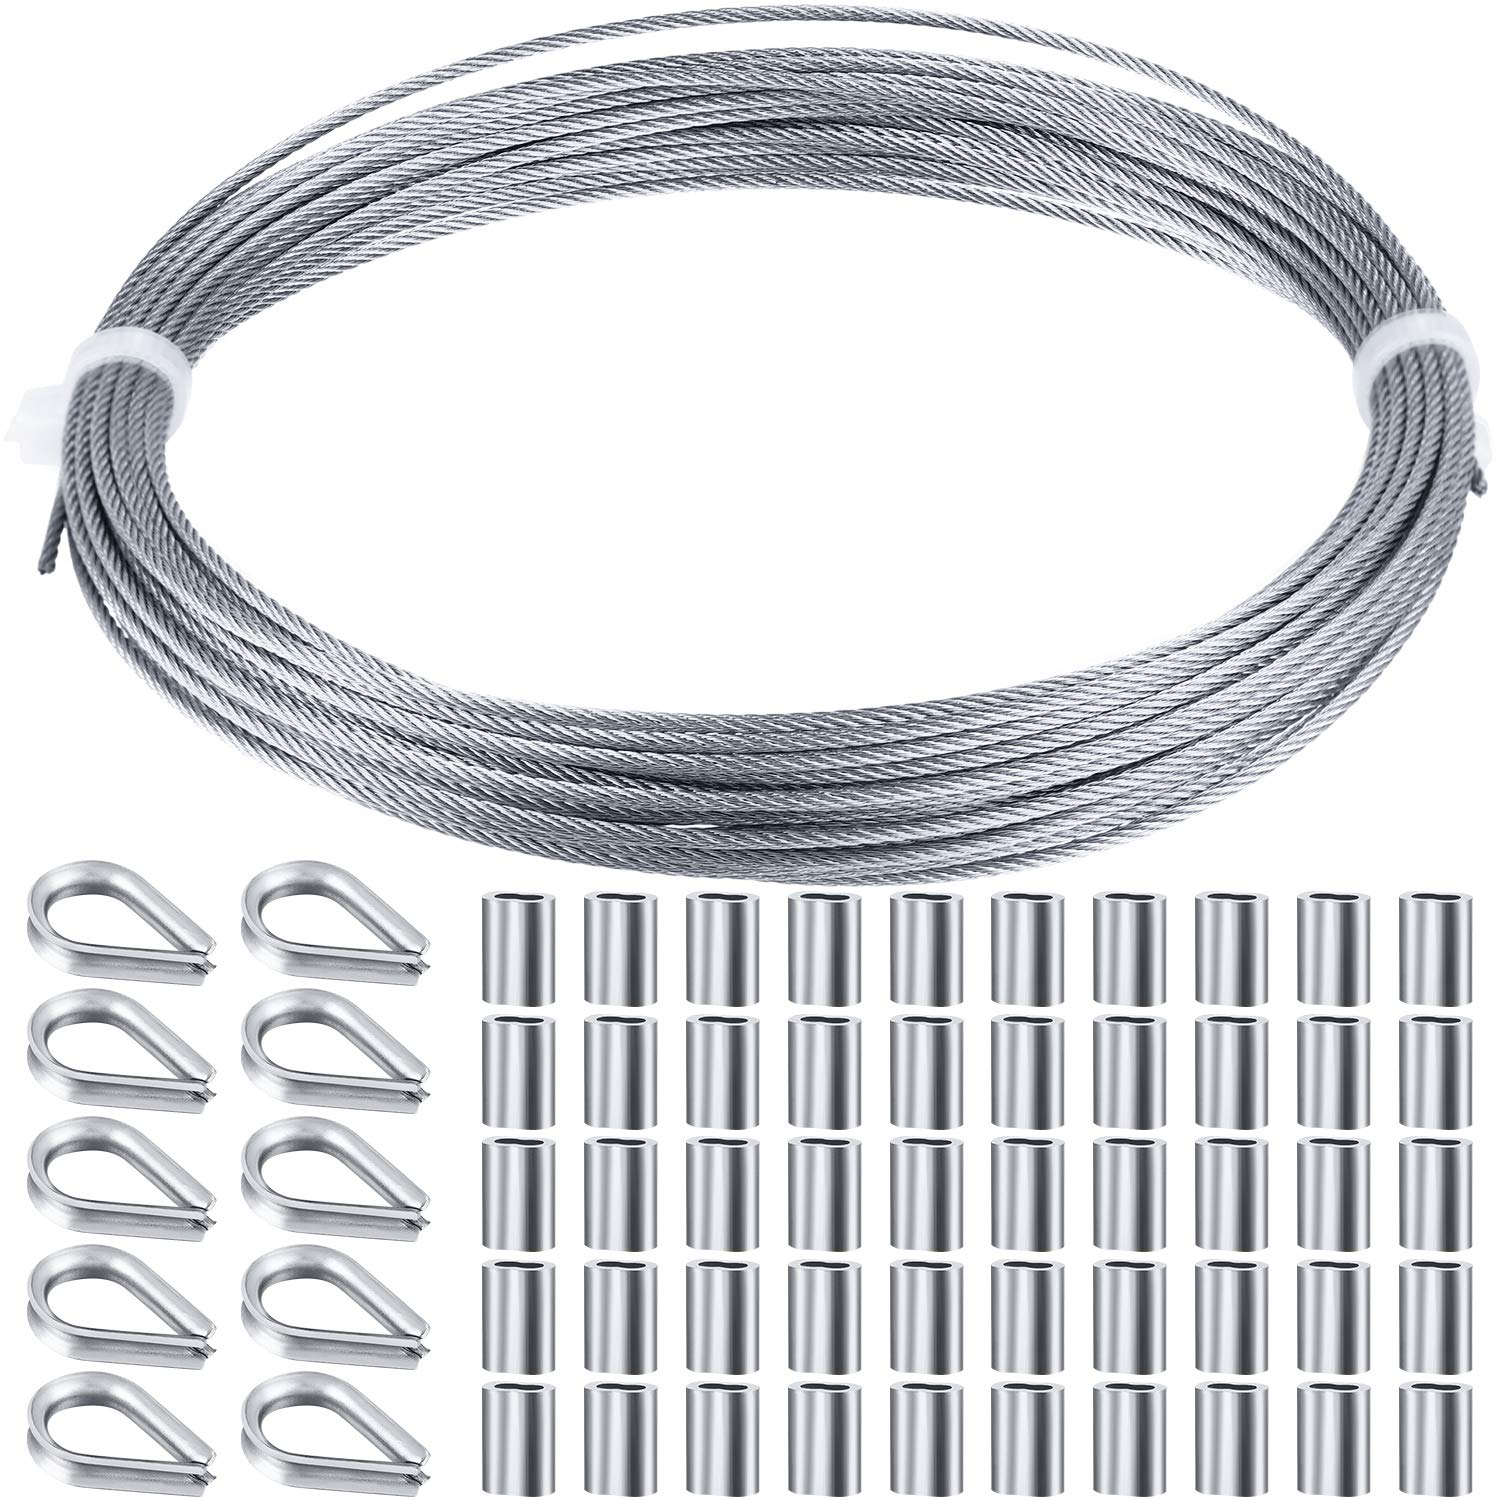 5M Cable Railing Steel Wire PVC Coated Heavy Duty 304 Stainless Steel Cable Rope Hanging Wire